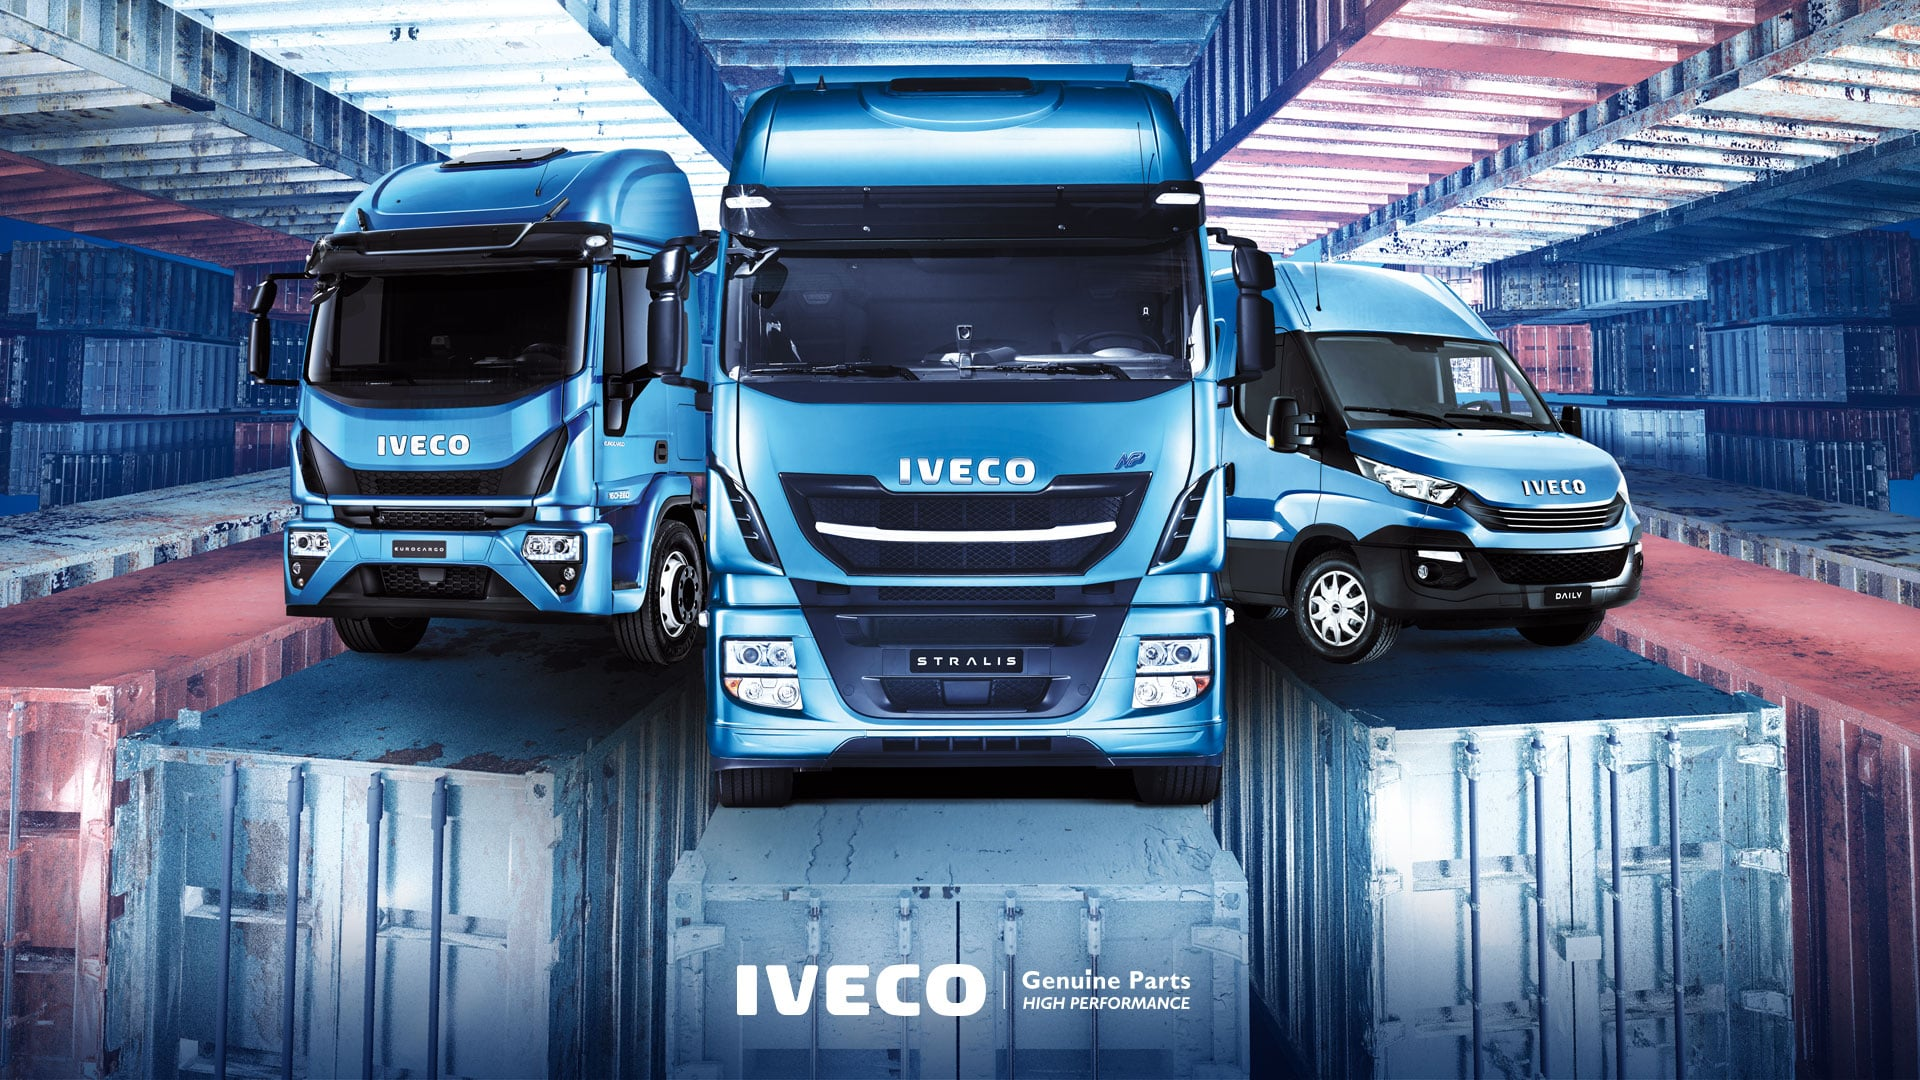 iveco_containers_bg_only_hq.jpg